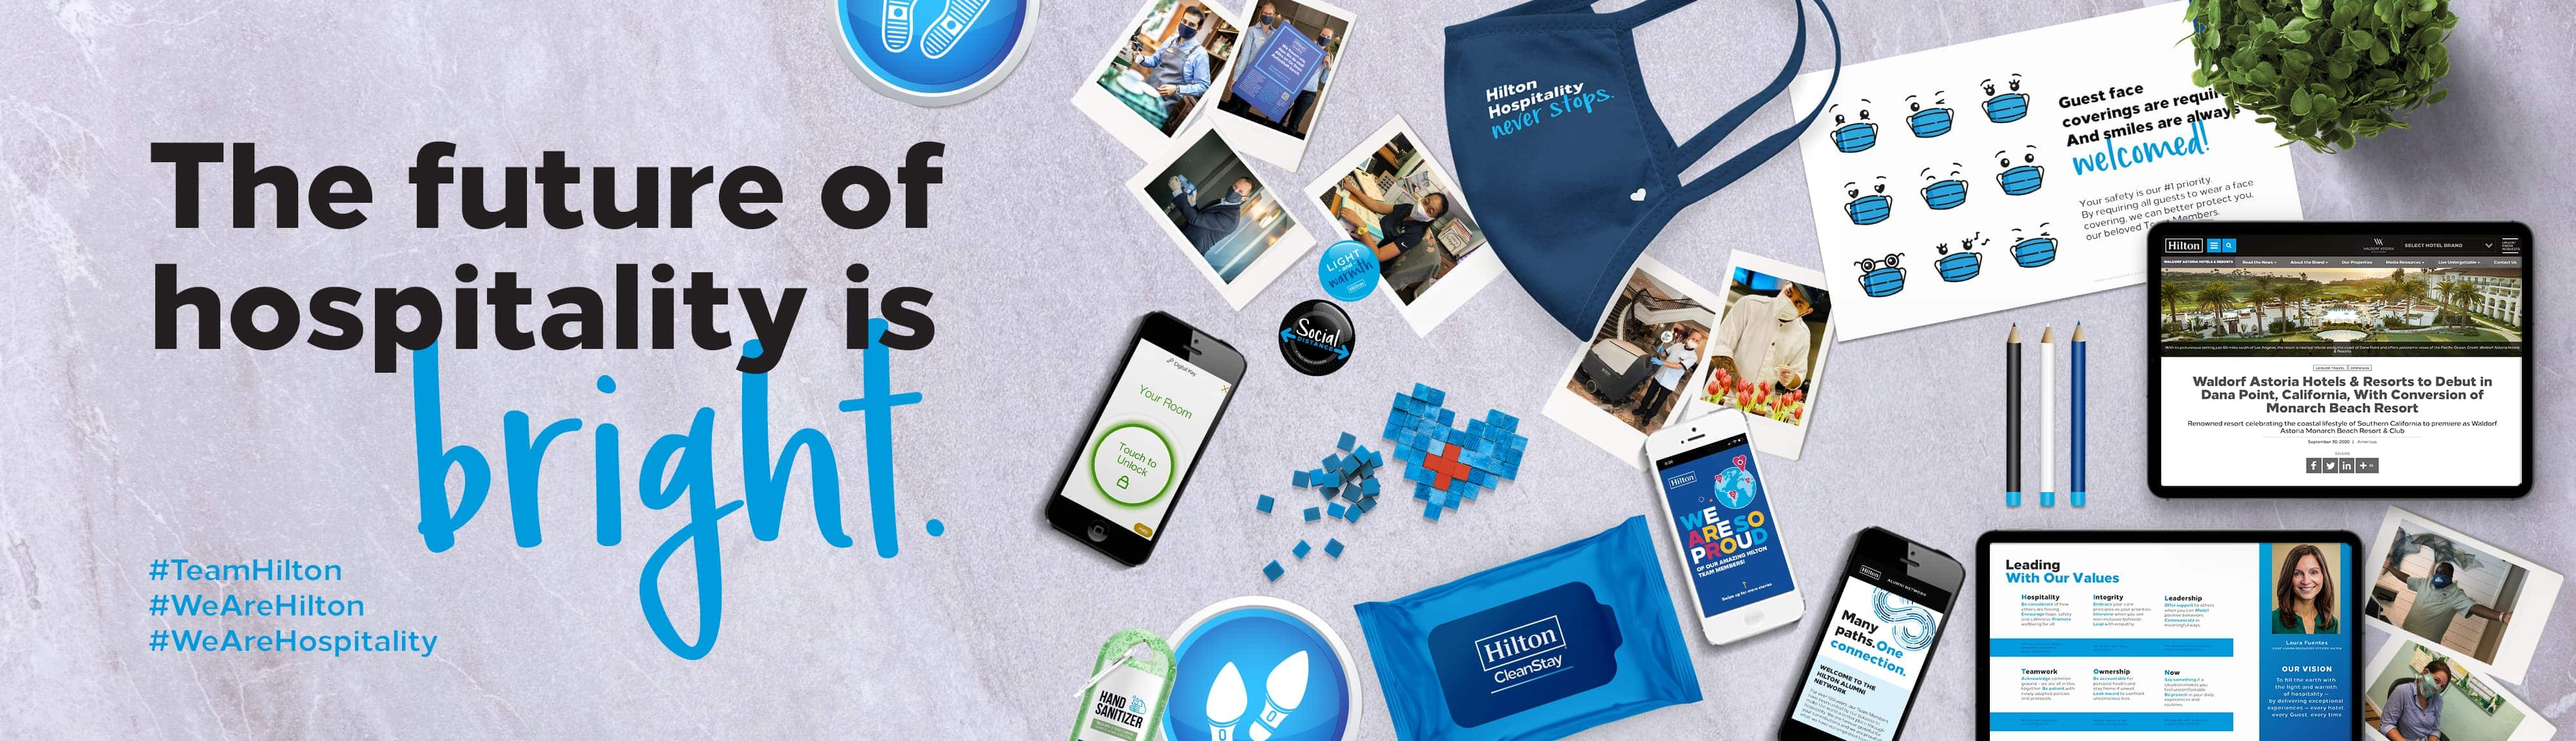 hilton-careers-home-page-hero-collage